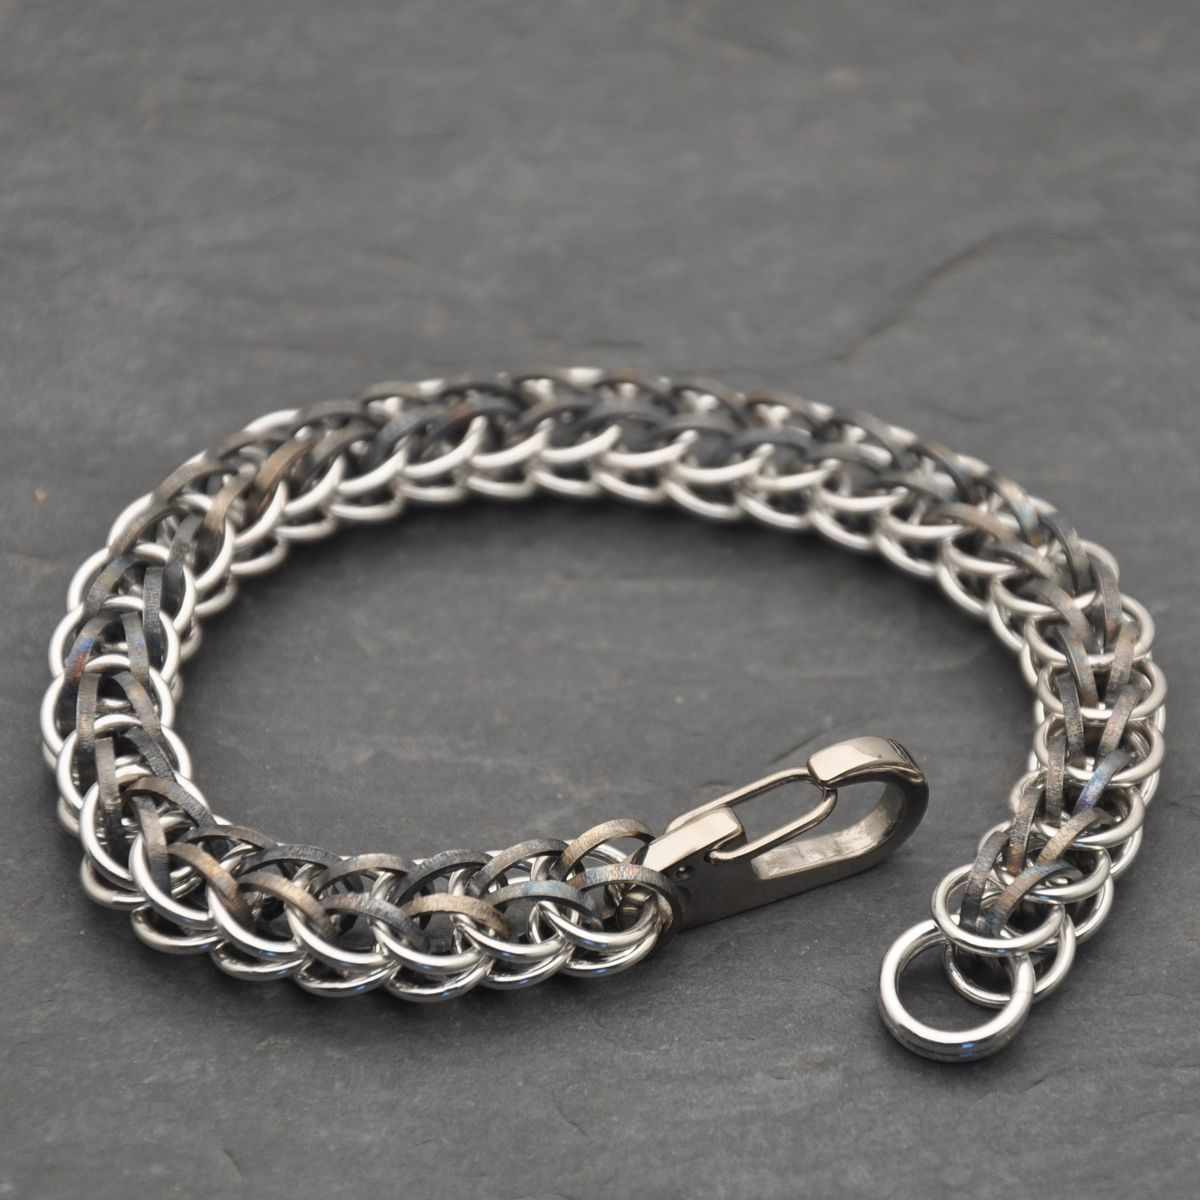 Make A Chain Mail Bracelet